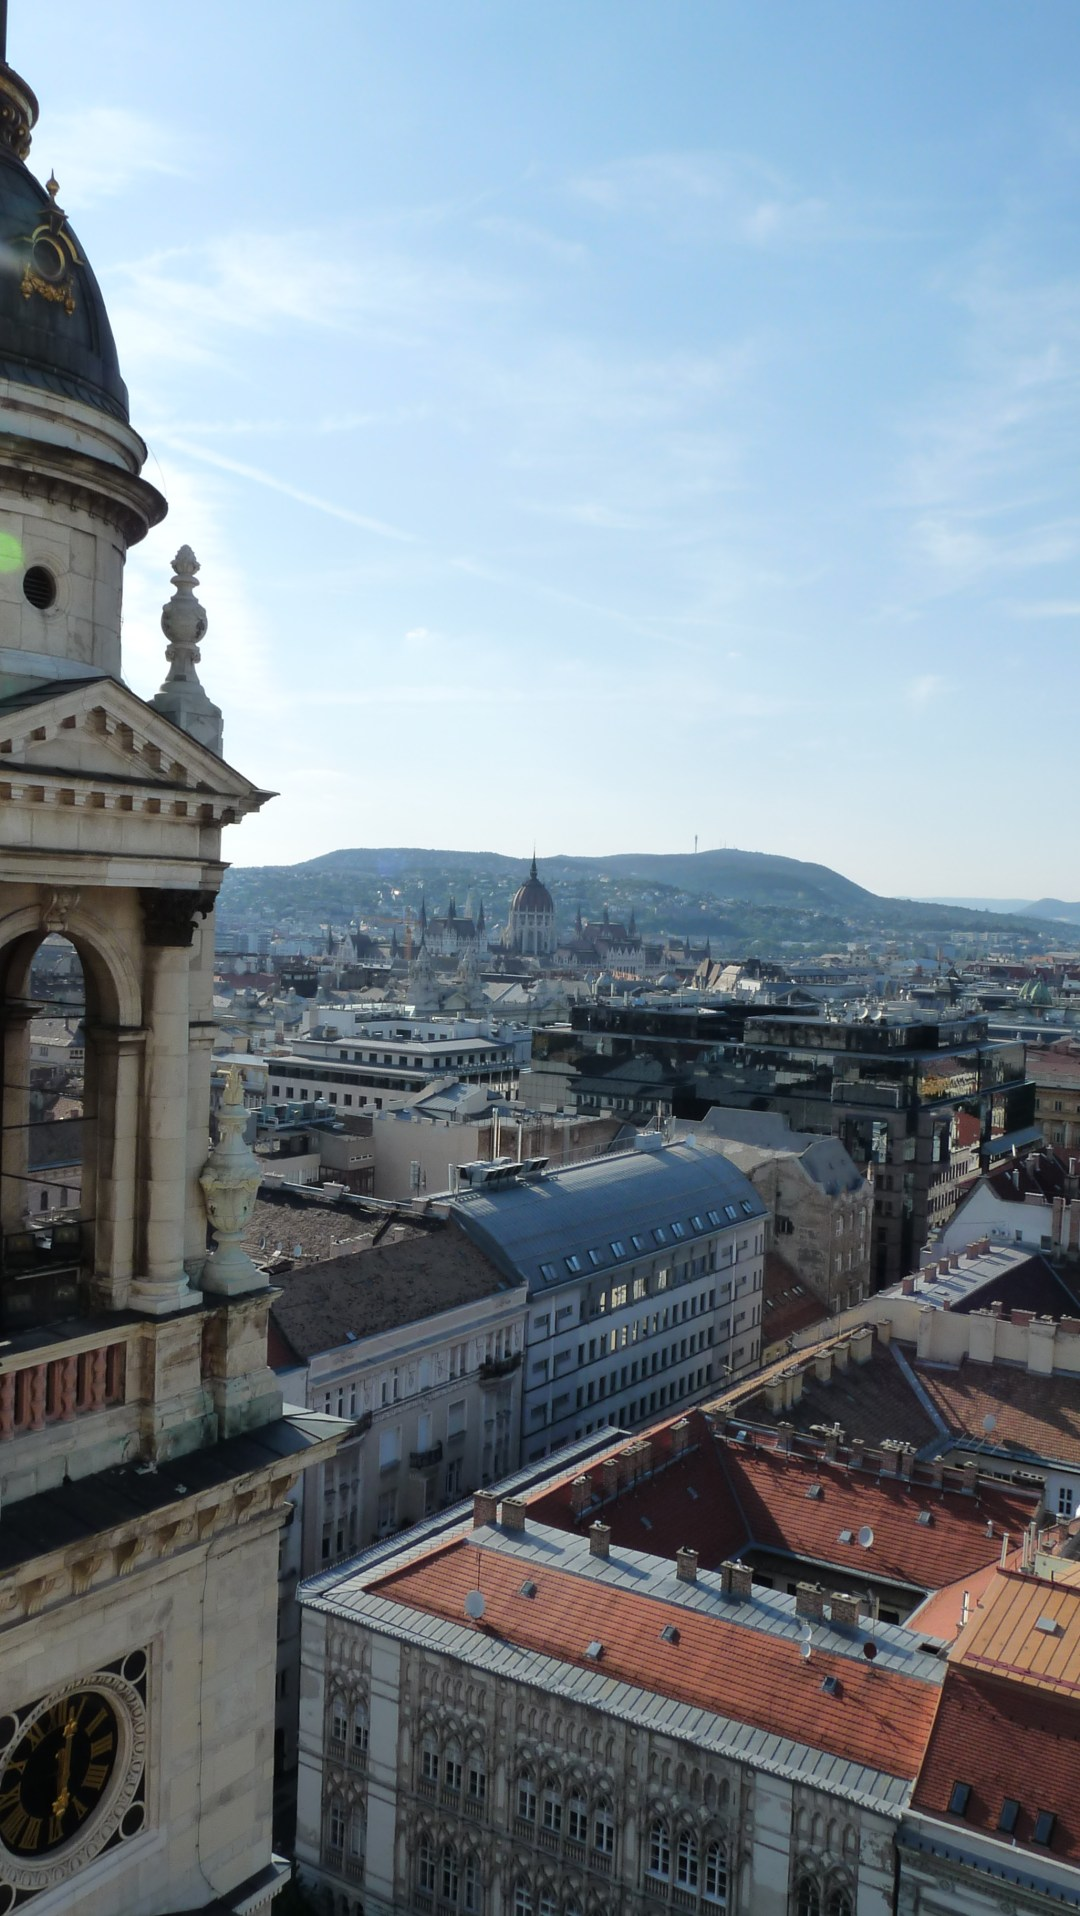 View from Panorama Lookout Tower of St. Stephen's Basilica - Top 5 viewpoints in Budapest Hungary, recommended by a local | Aliz's Wonderland